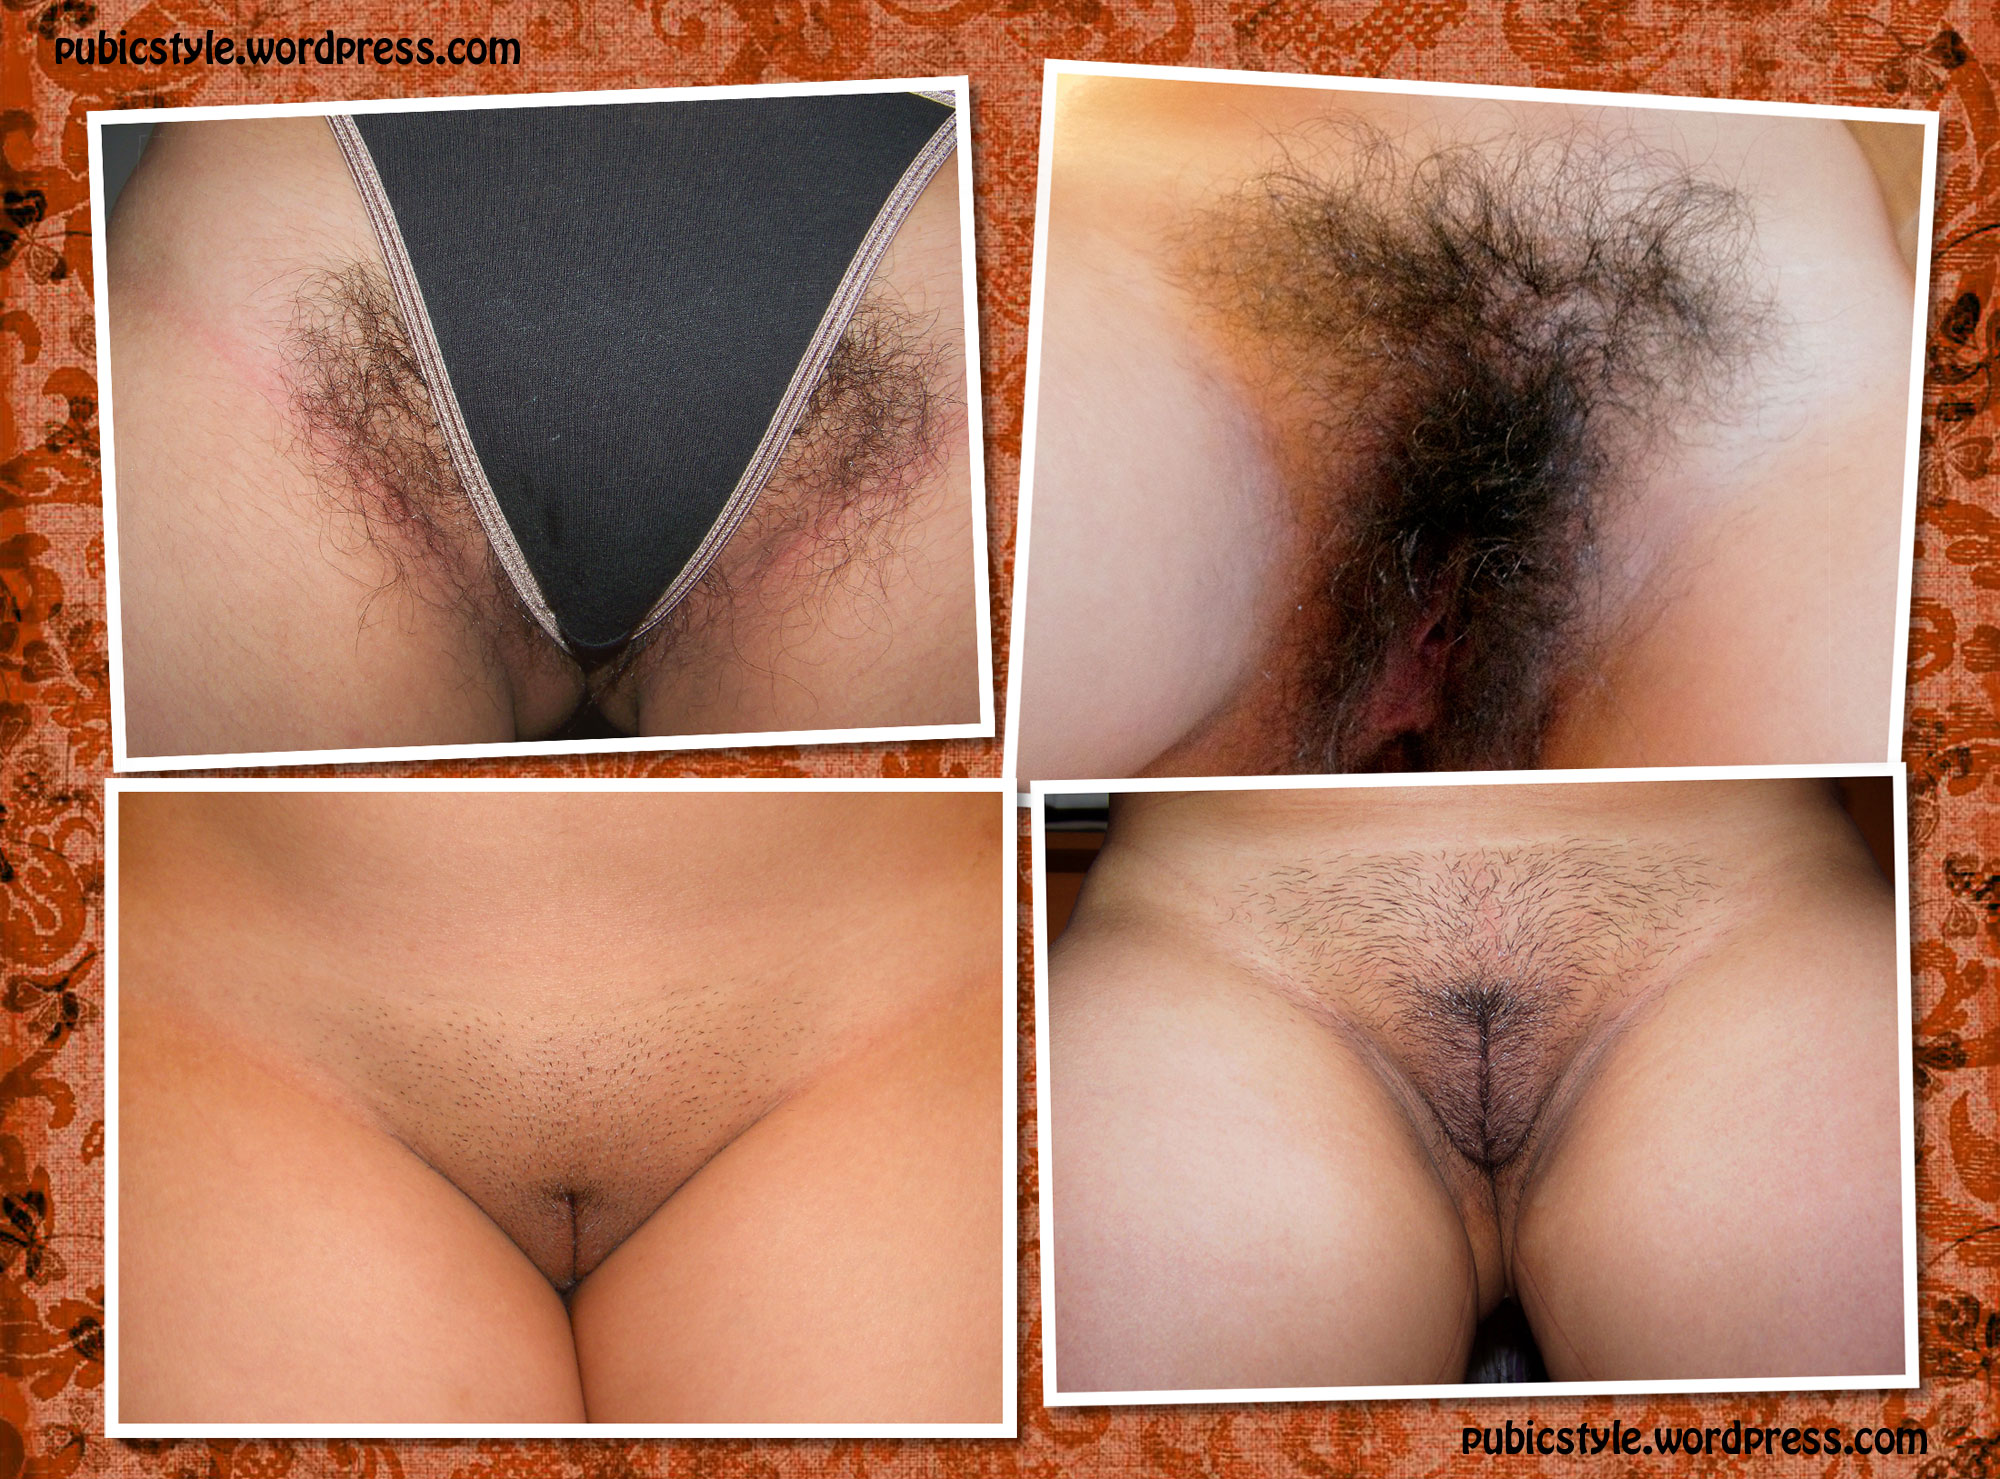 pubicstyle  Featuring womens pubic hair styles and pubic hair care links  Page 8